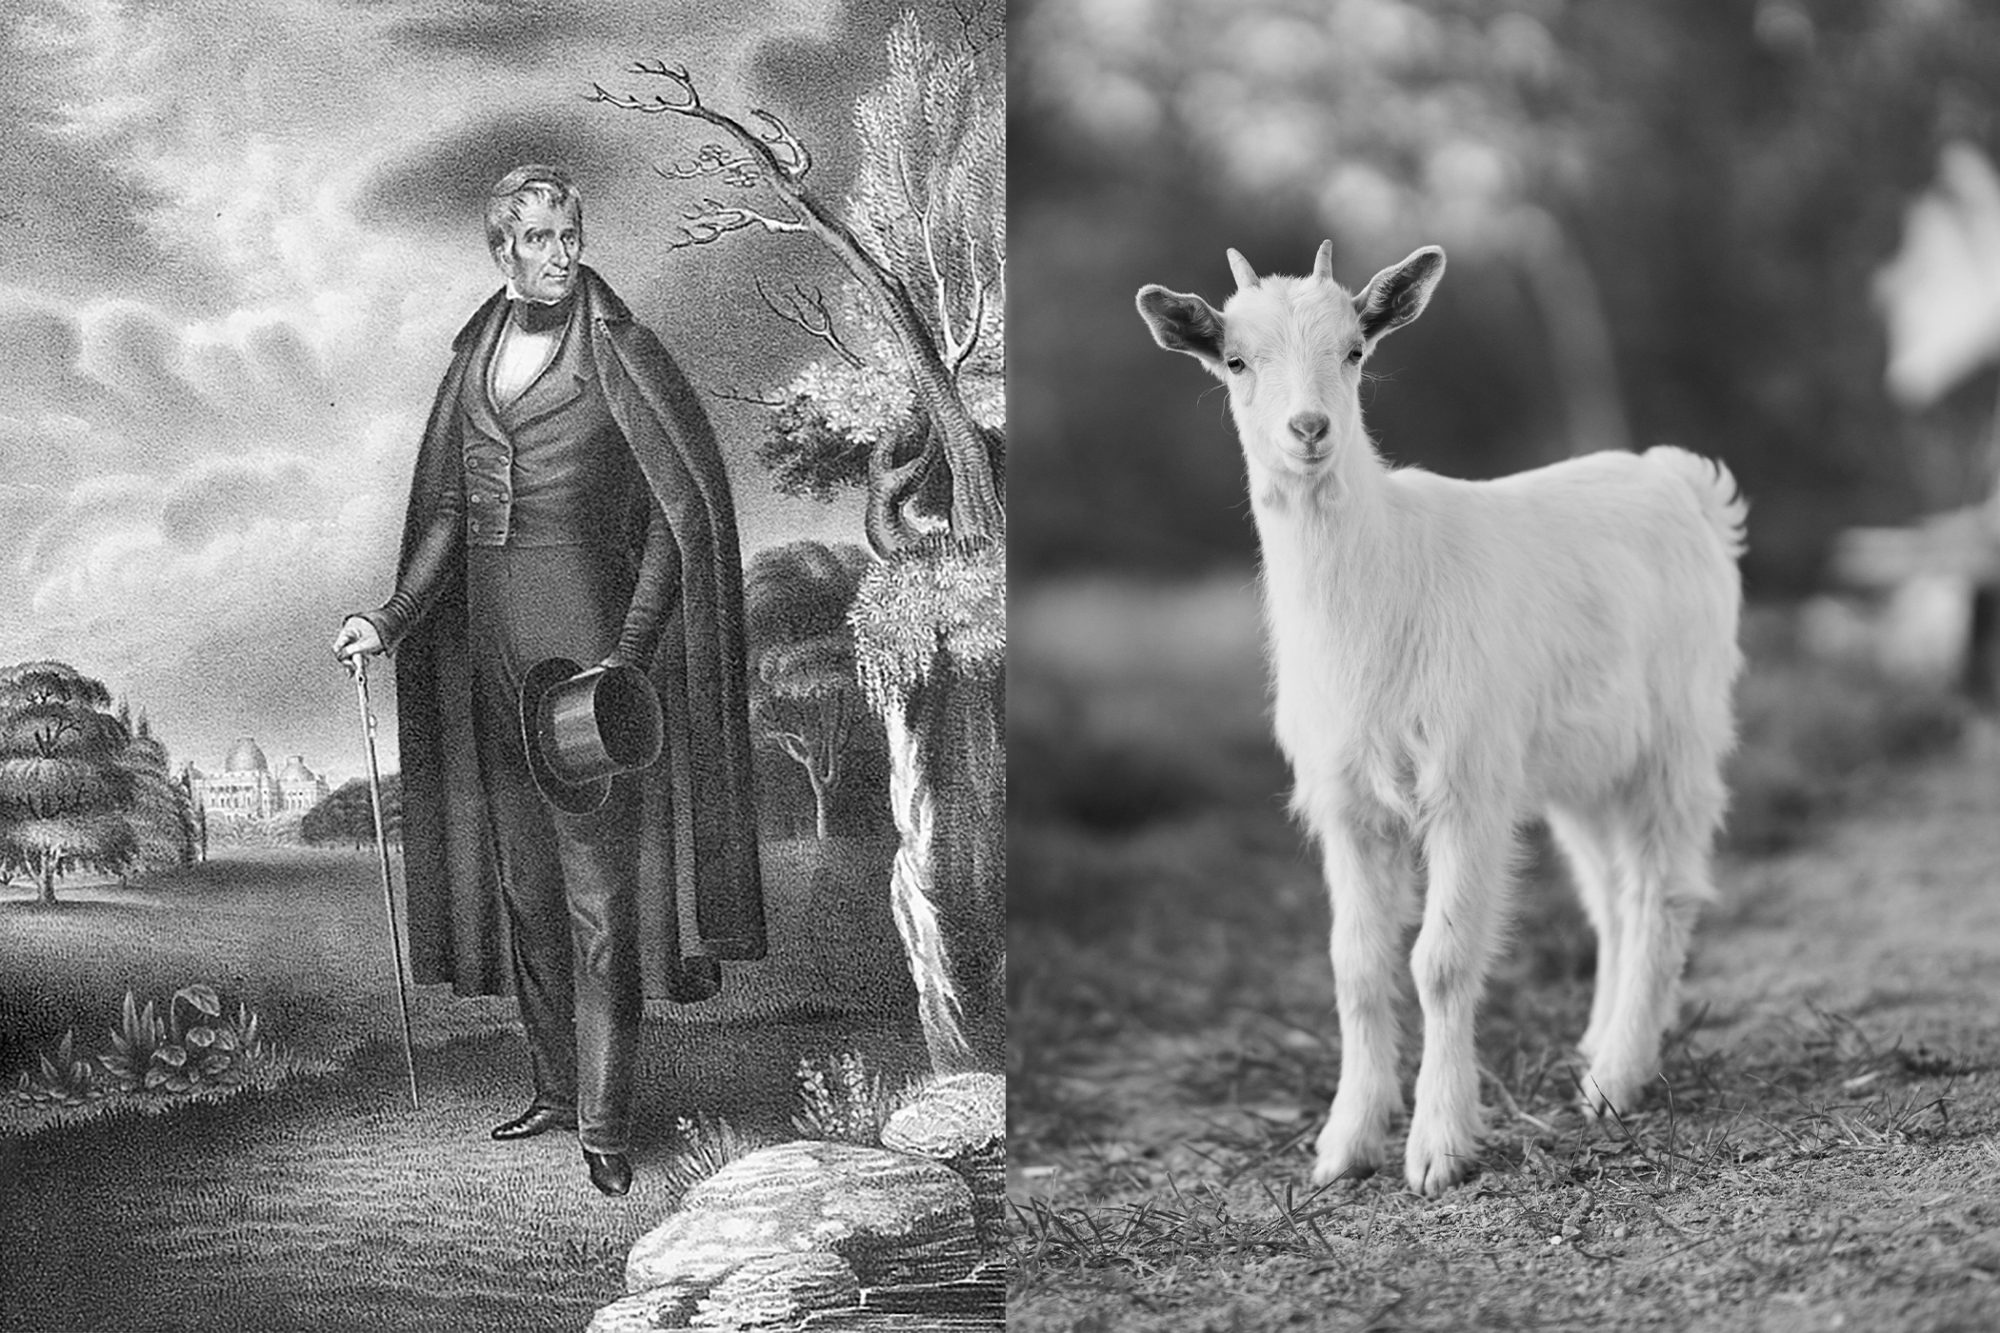 Composite of William Henry Harrison and goat